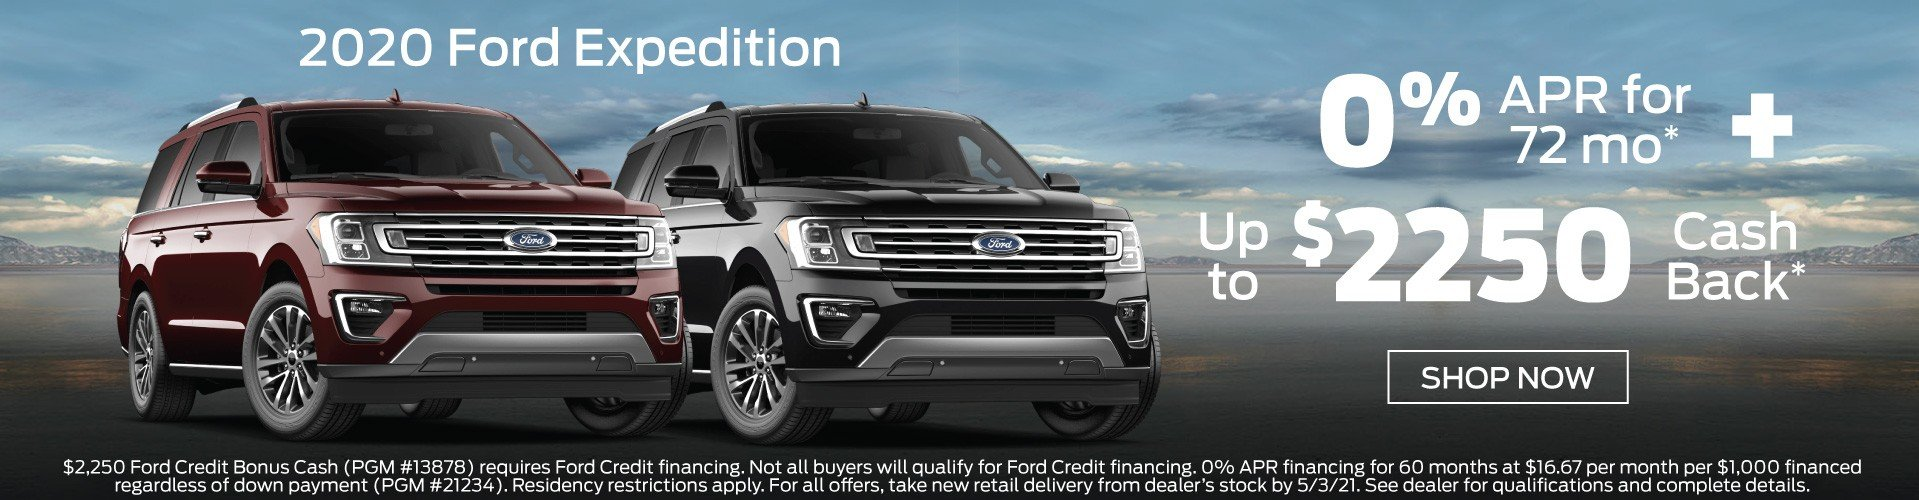 Ford Expedition Incentive 5-3-2021